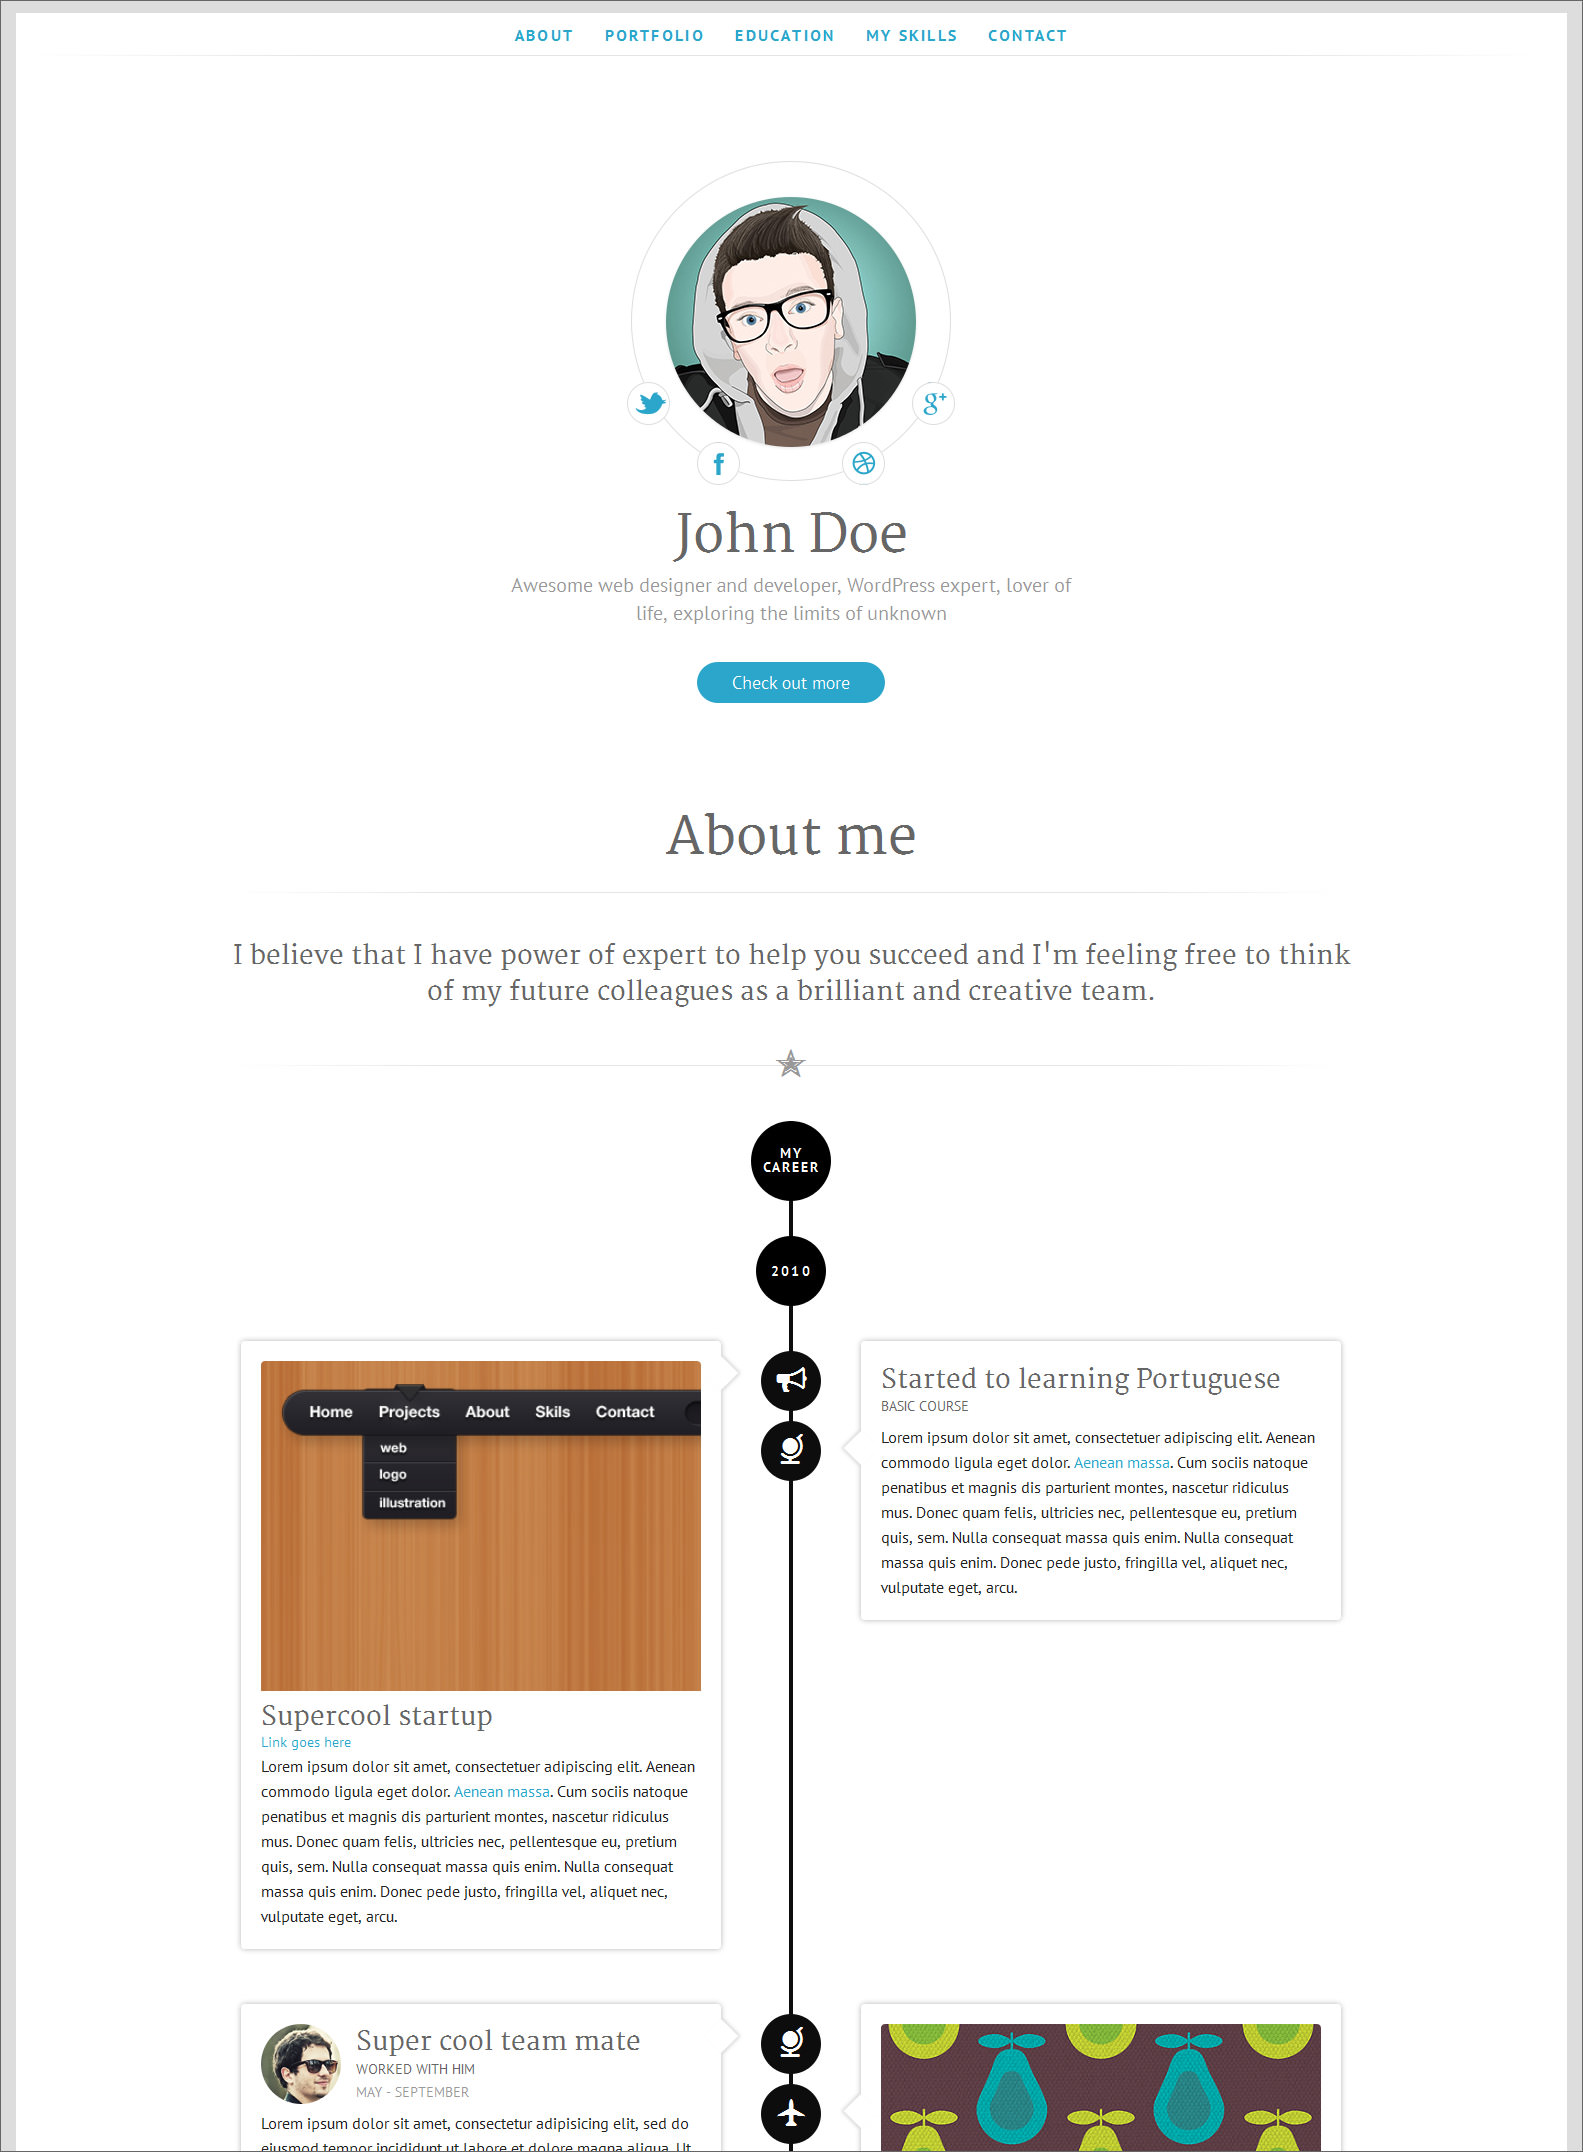 7 creative online cv resume template for web  graphic designer  architect  photographer